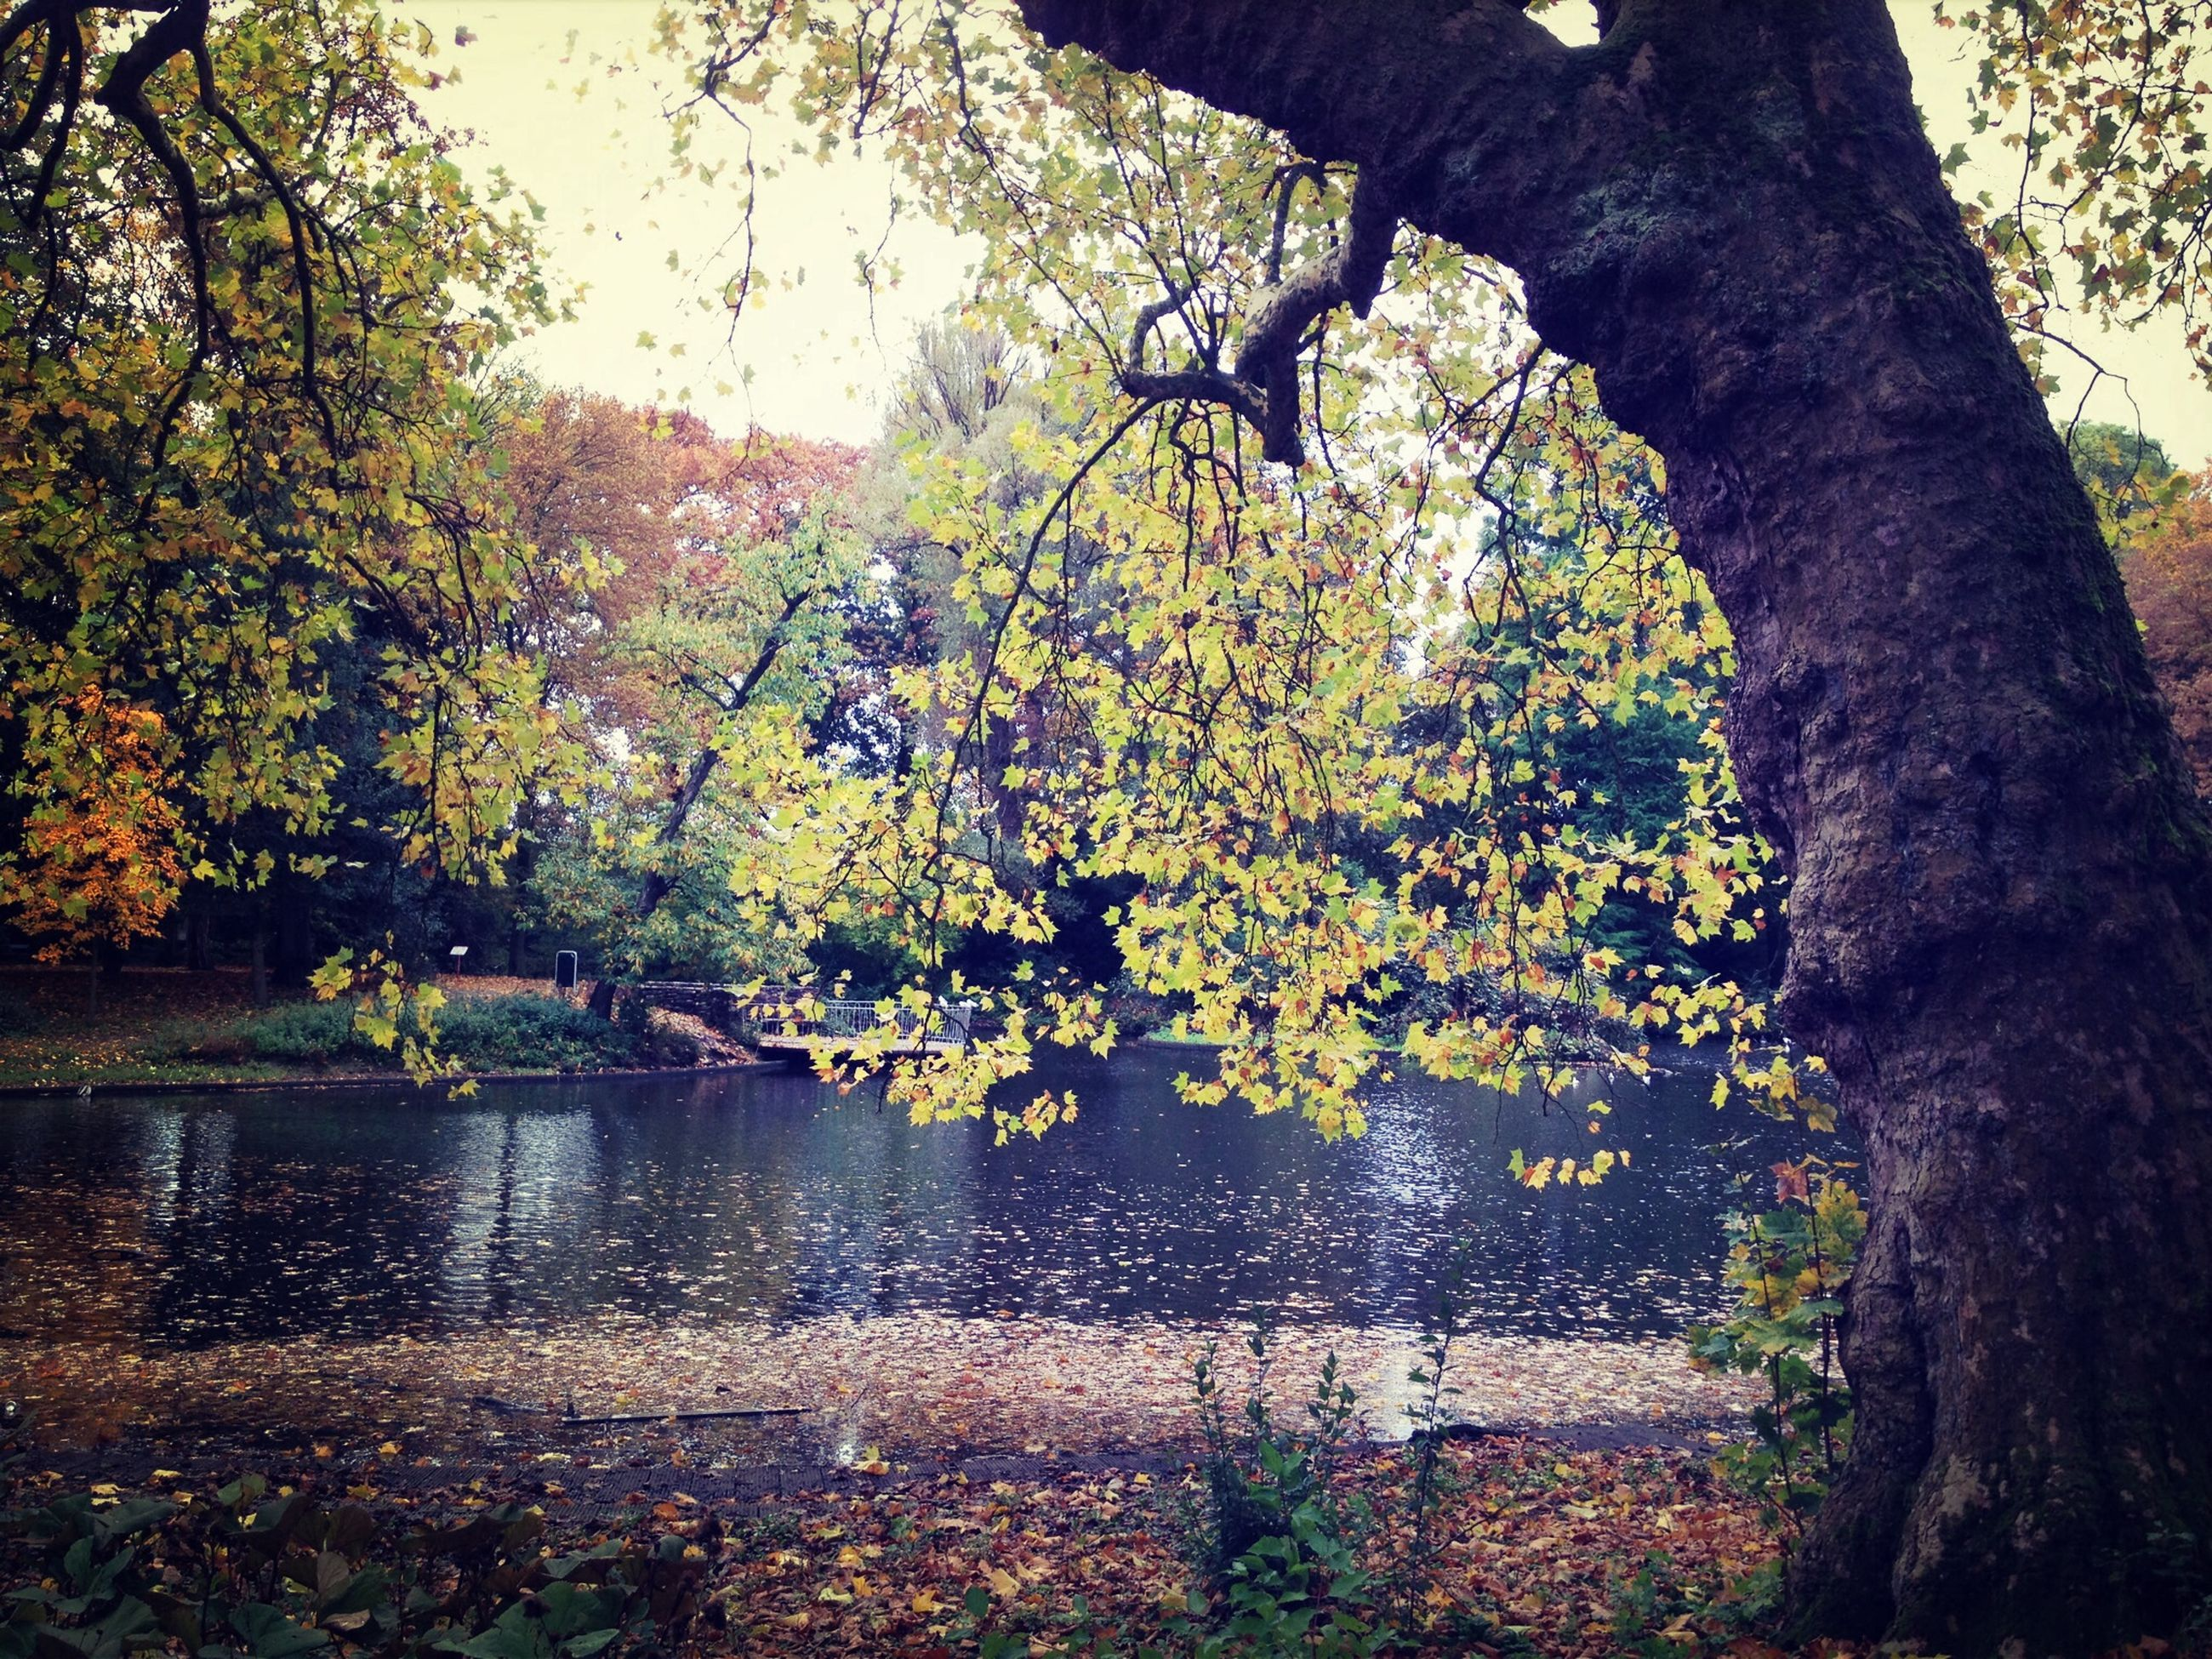 tree, water, lake, branch, reflection, tranquility, nature, growth, beauty in nature, tranquil scene, scenics, tree trunk, river, one person, day, outdoors, leaf, pond, plant, autumn